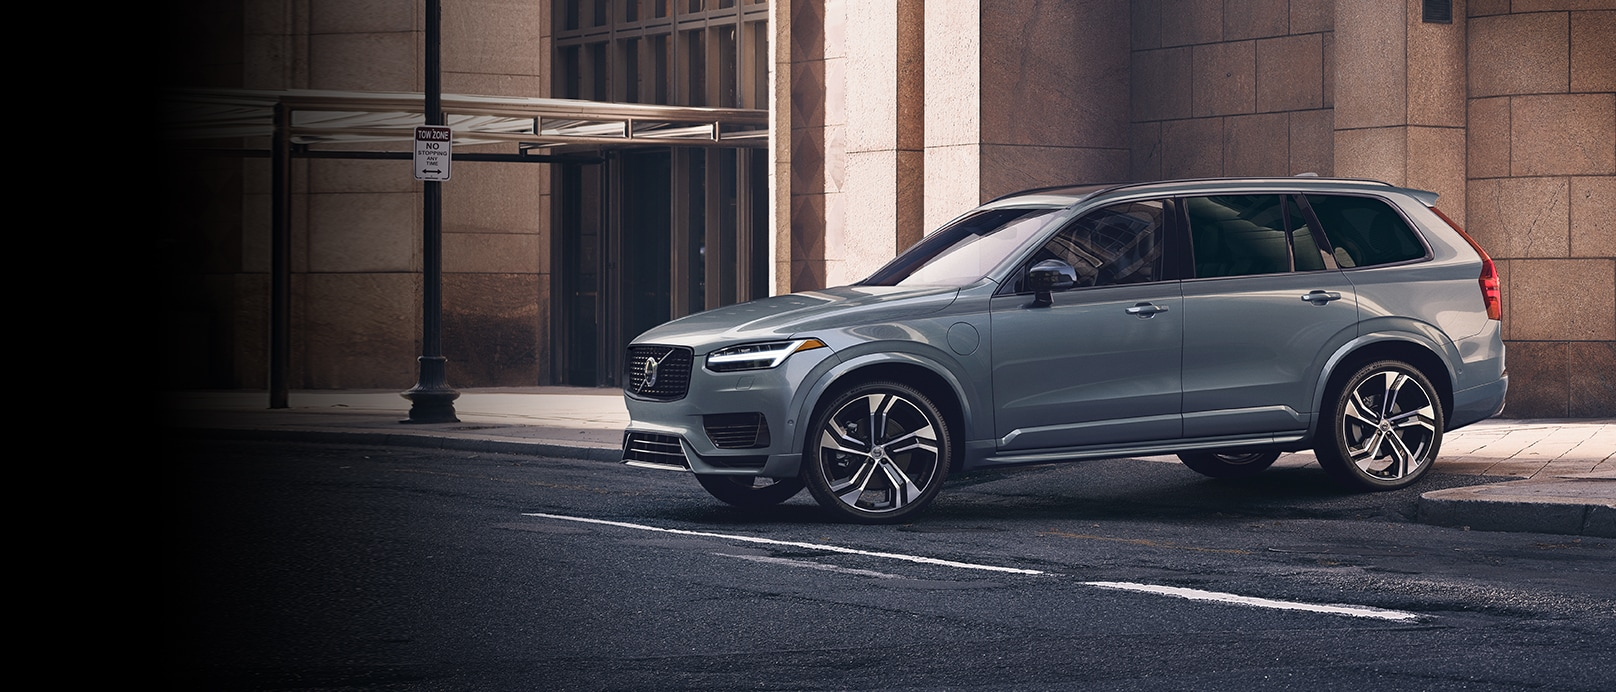 Volvo XC60 recharge hybrid luxury SUV side view